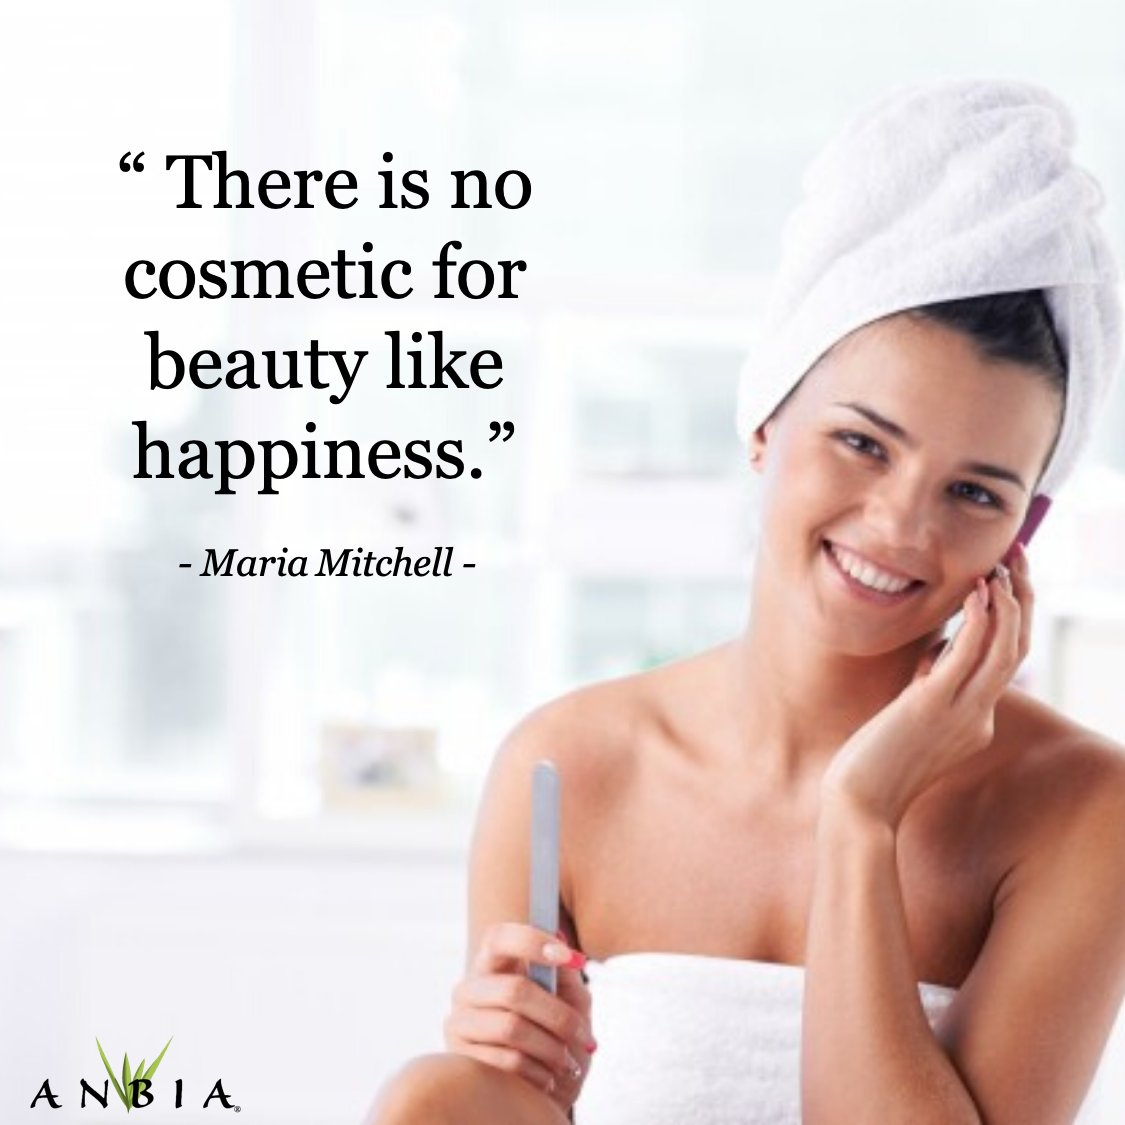 Be happy and take care of yourself!  At Anbia® we're with you every step of the way .  #AnbiaSkin #MariaMitchell #QuoteMotivation #HealthySkin #SkinCare #OrganicSkincareProducts #CertifiedOrganic #BeHappypic.twitter.com/7Odqf4FcGS